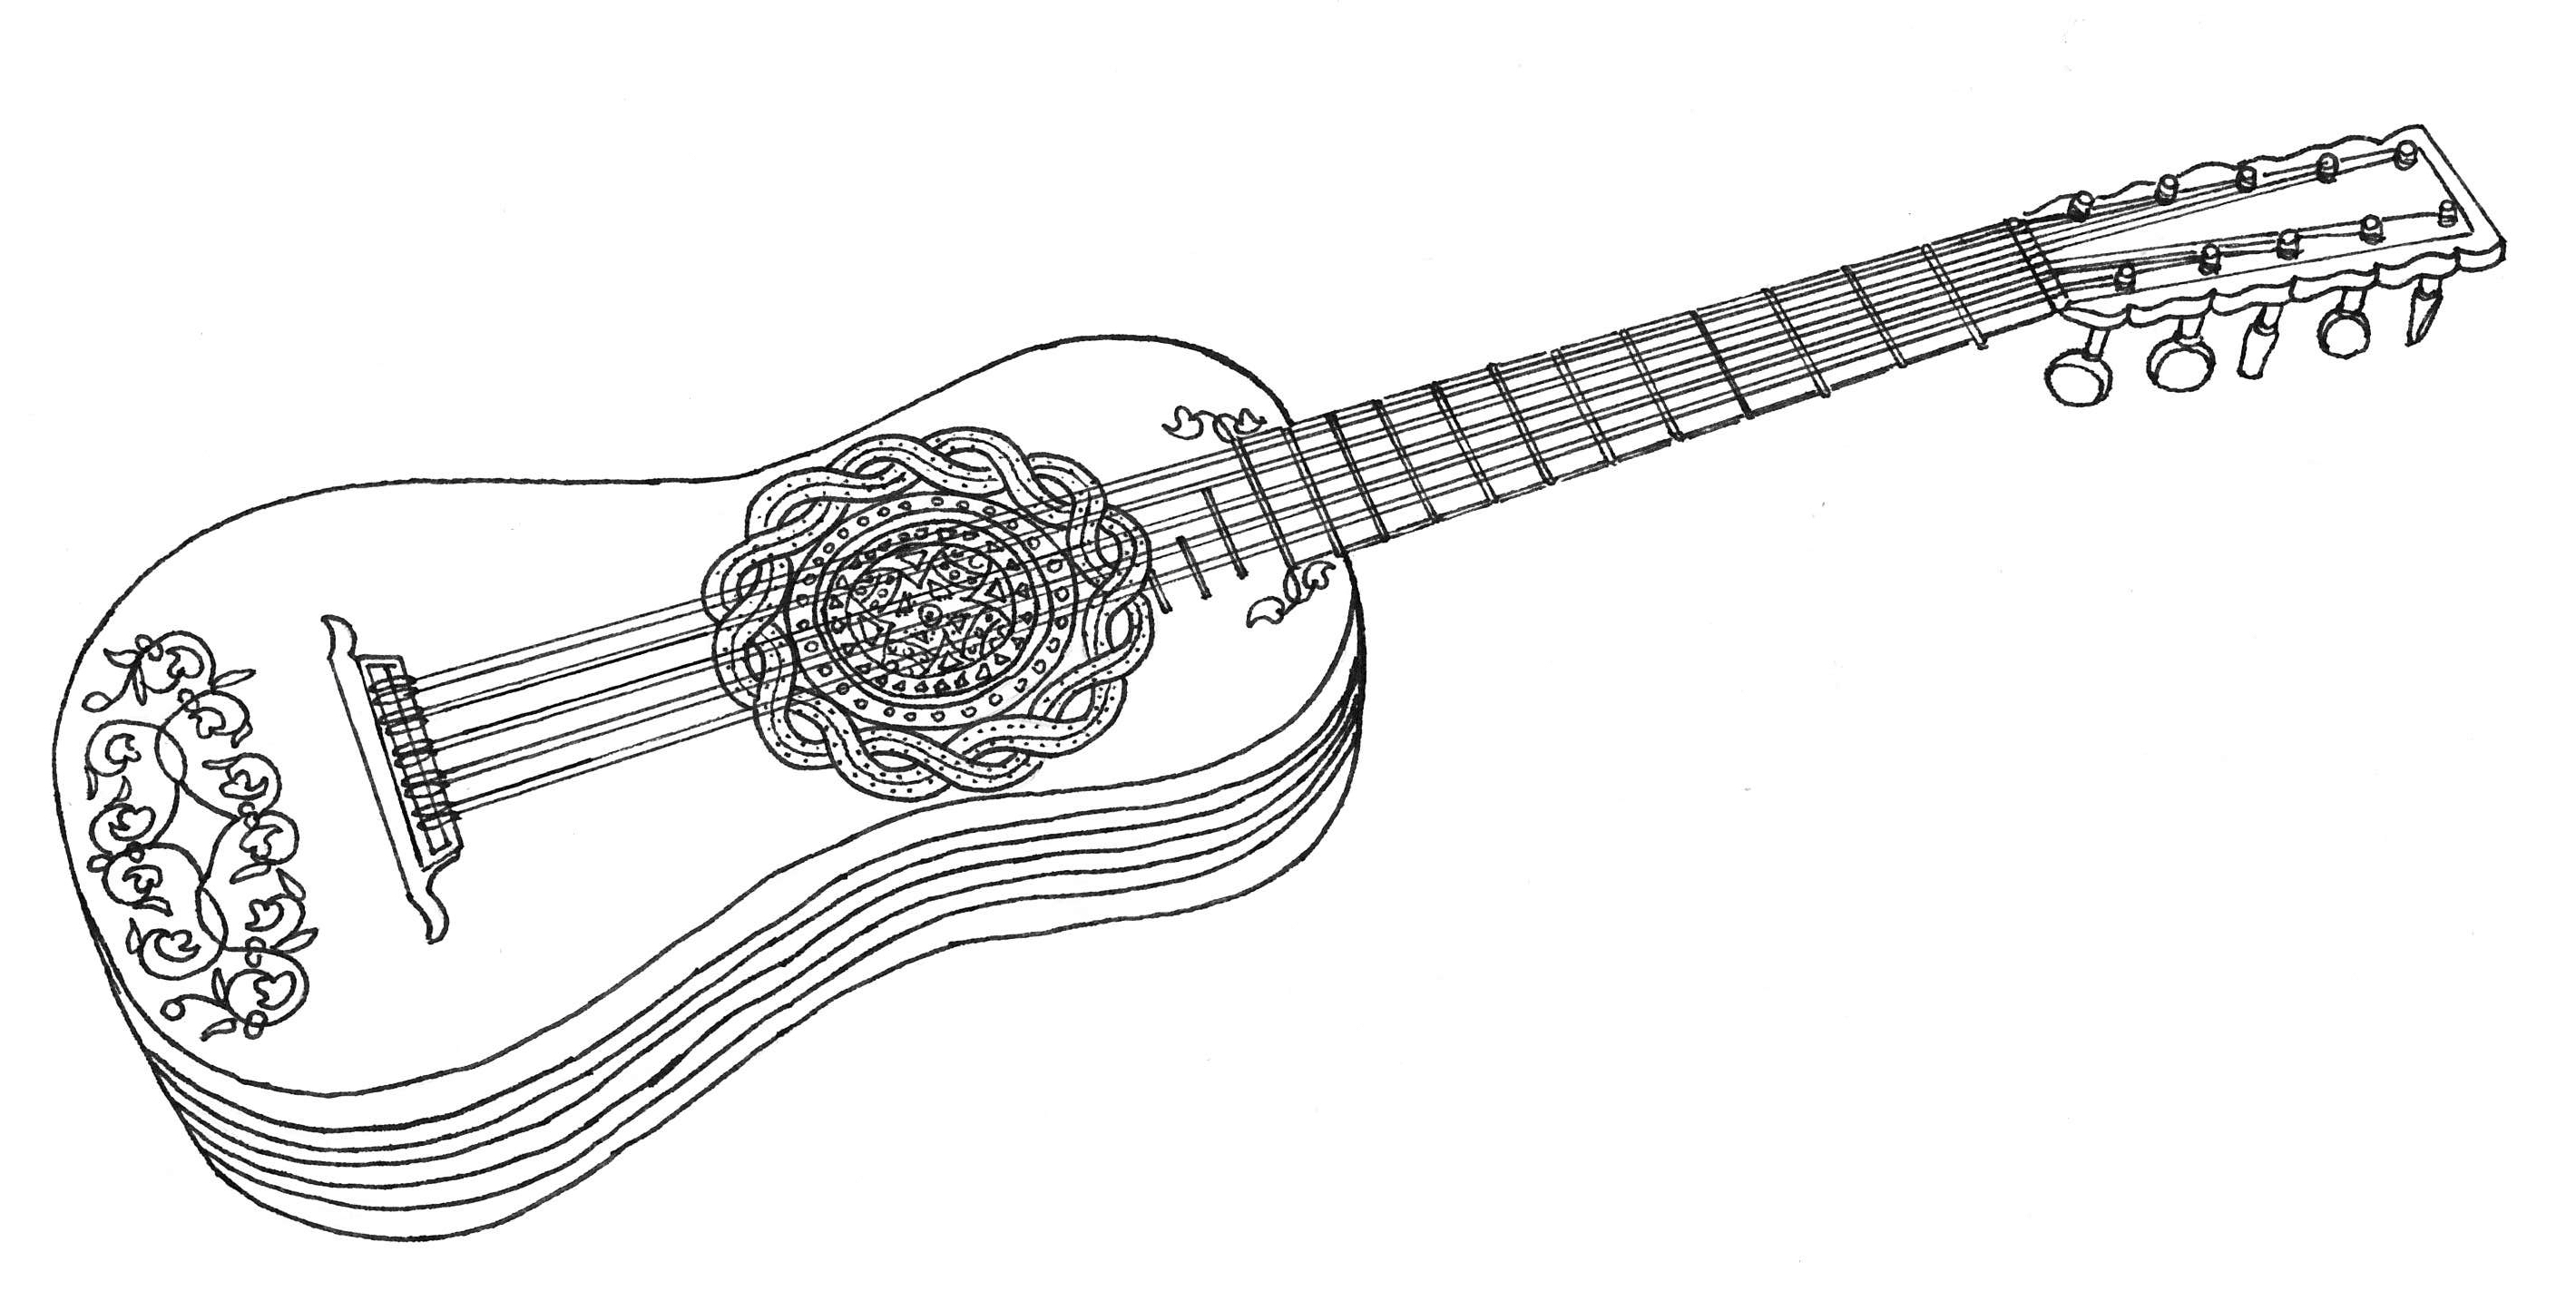 La guitare baroque